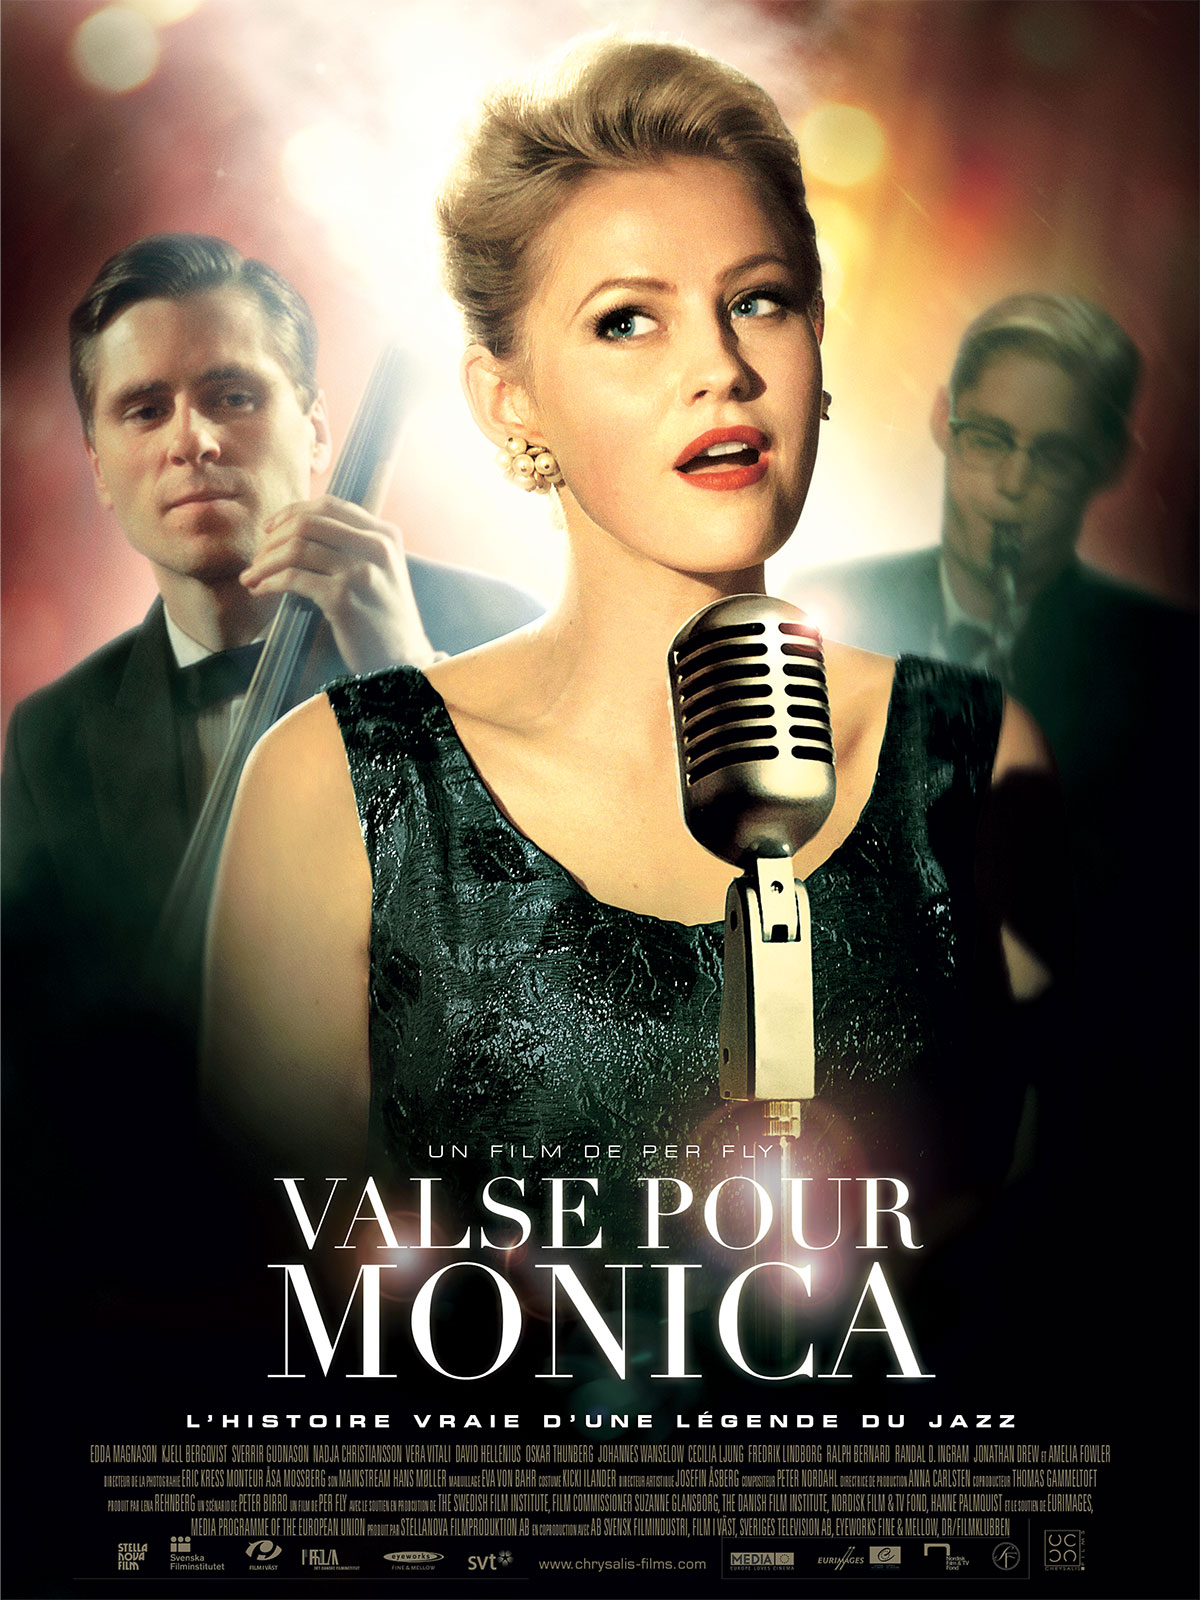 Valse pour Monica - Per Fly